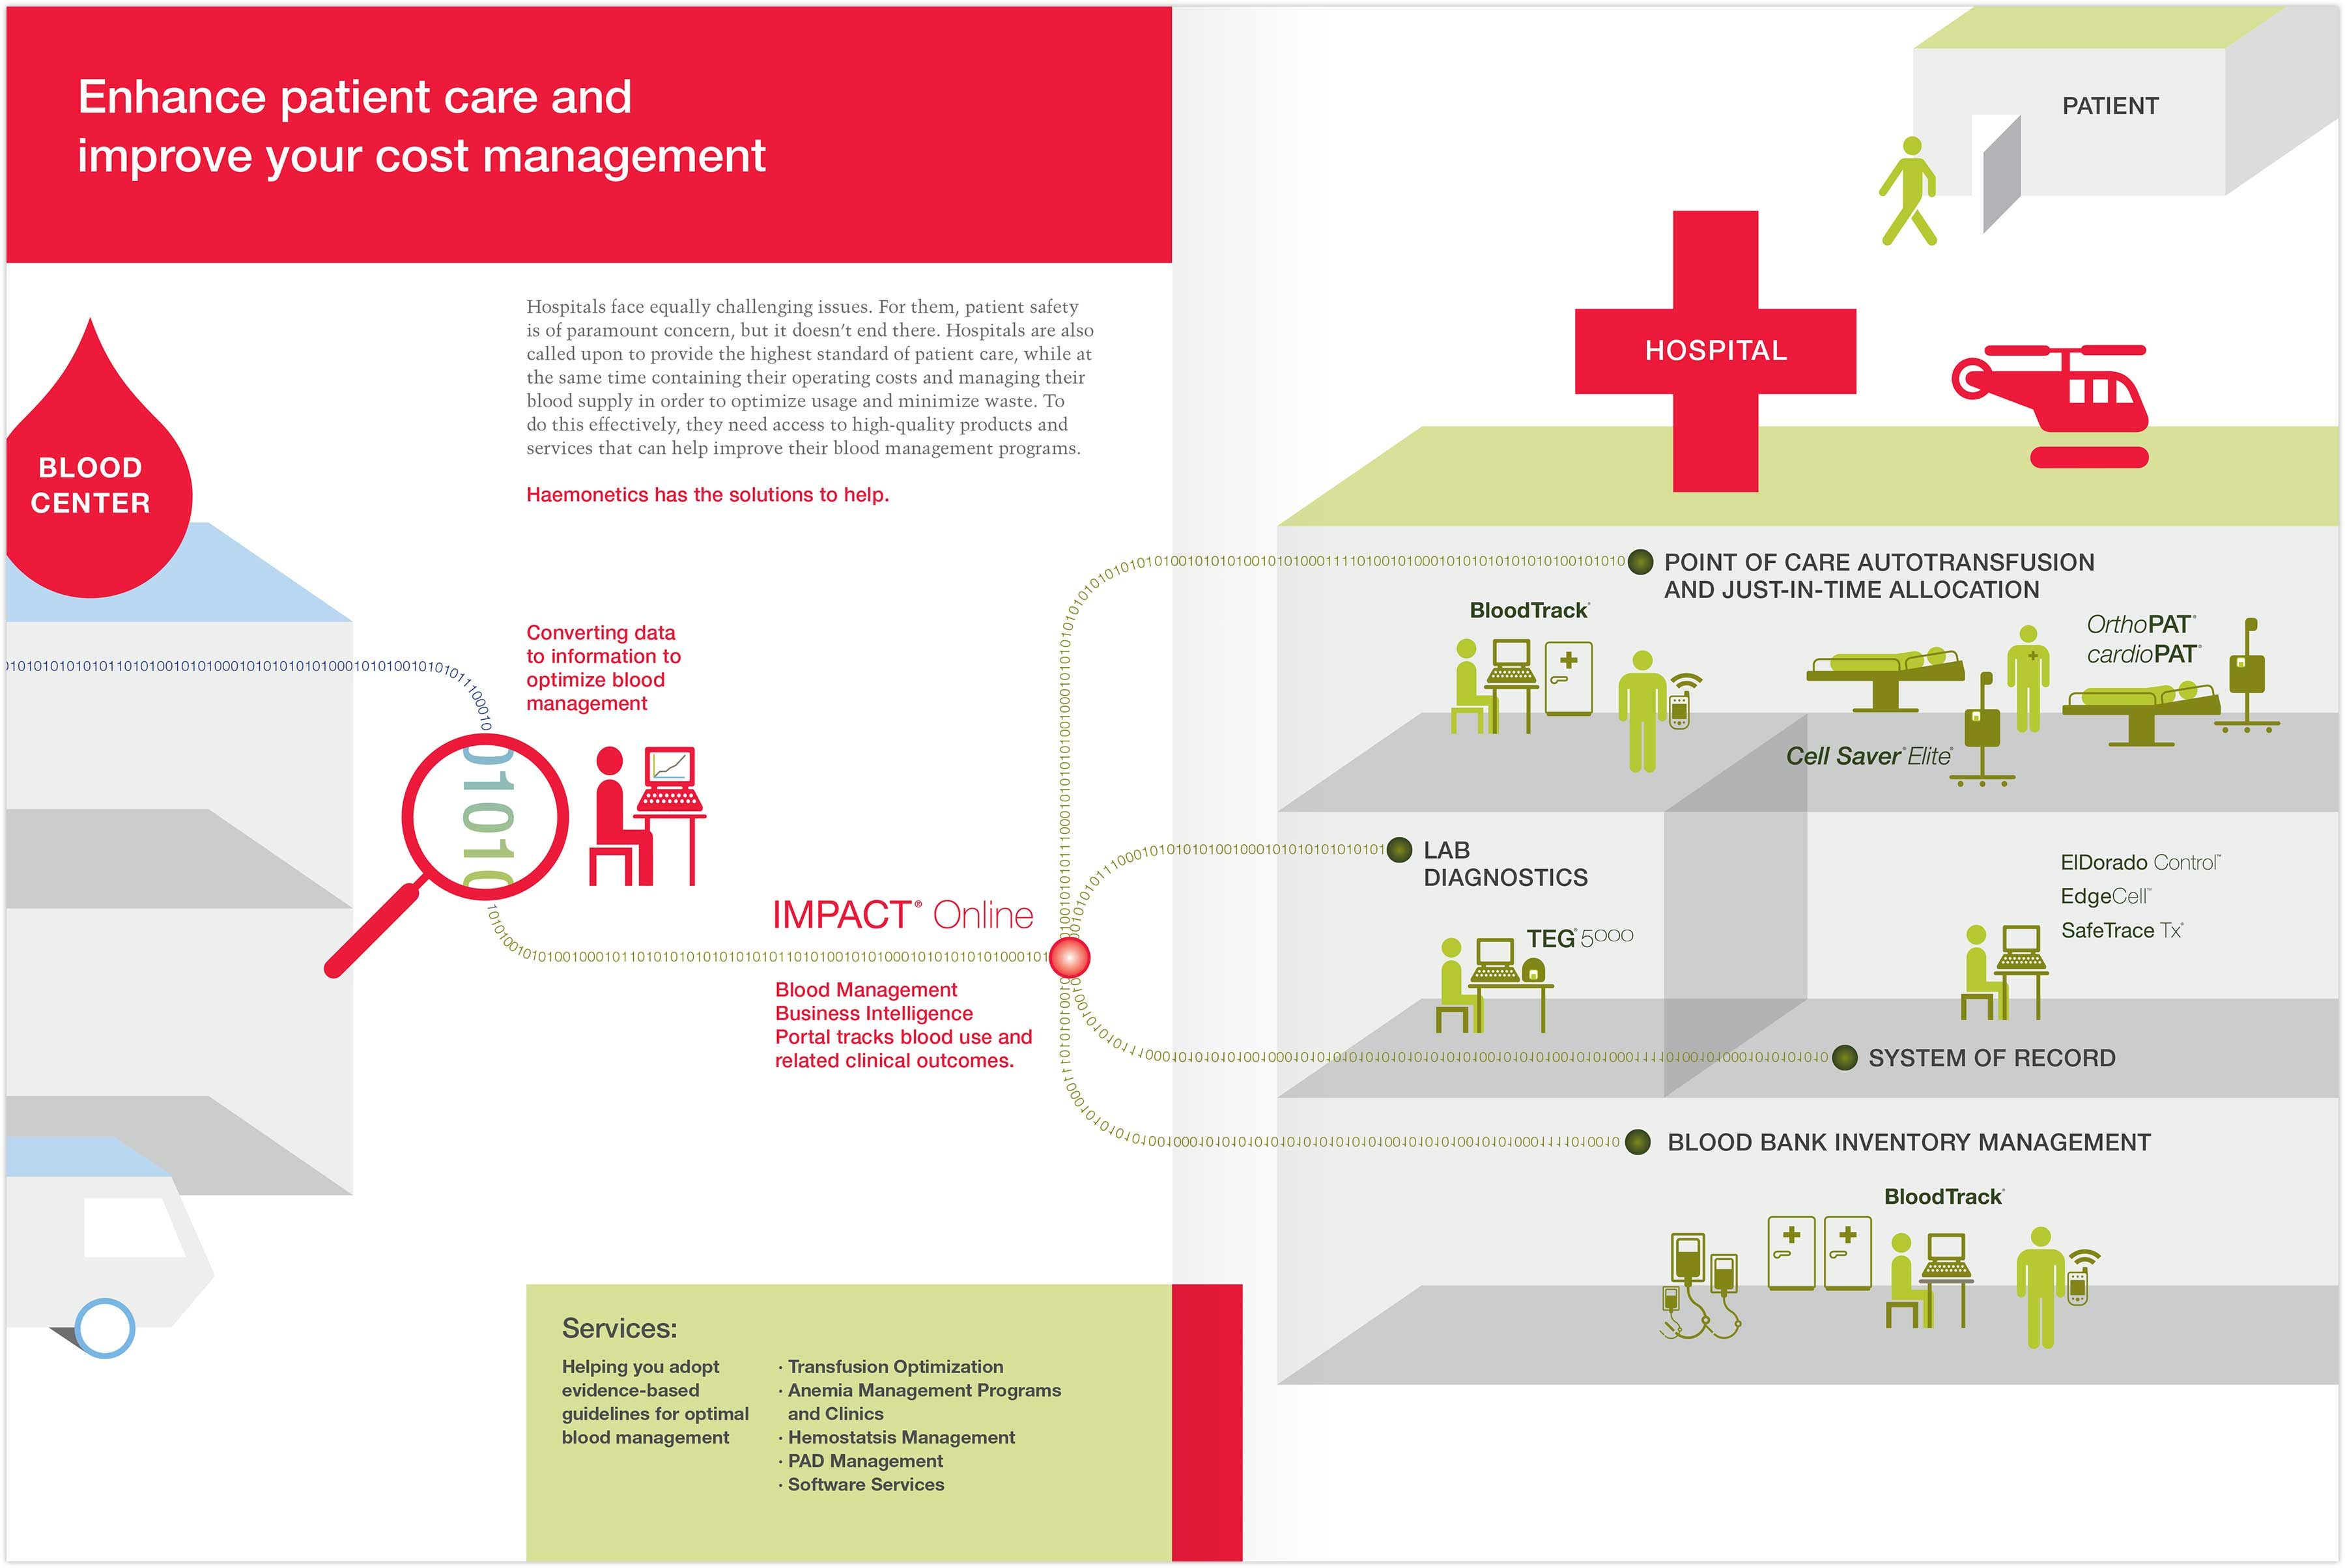 Enhance patient care and improve your cost management spread